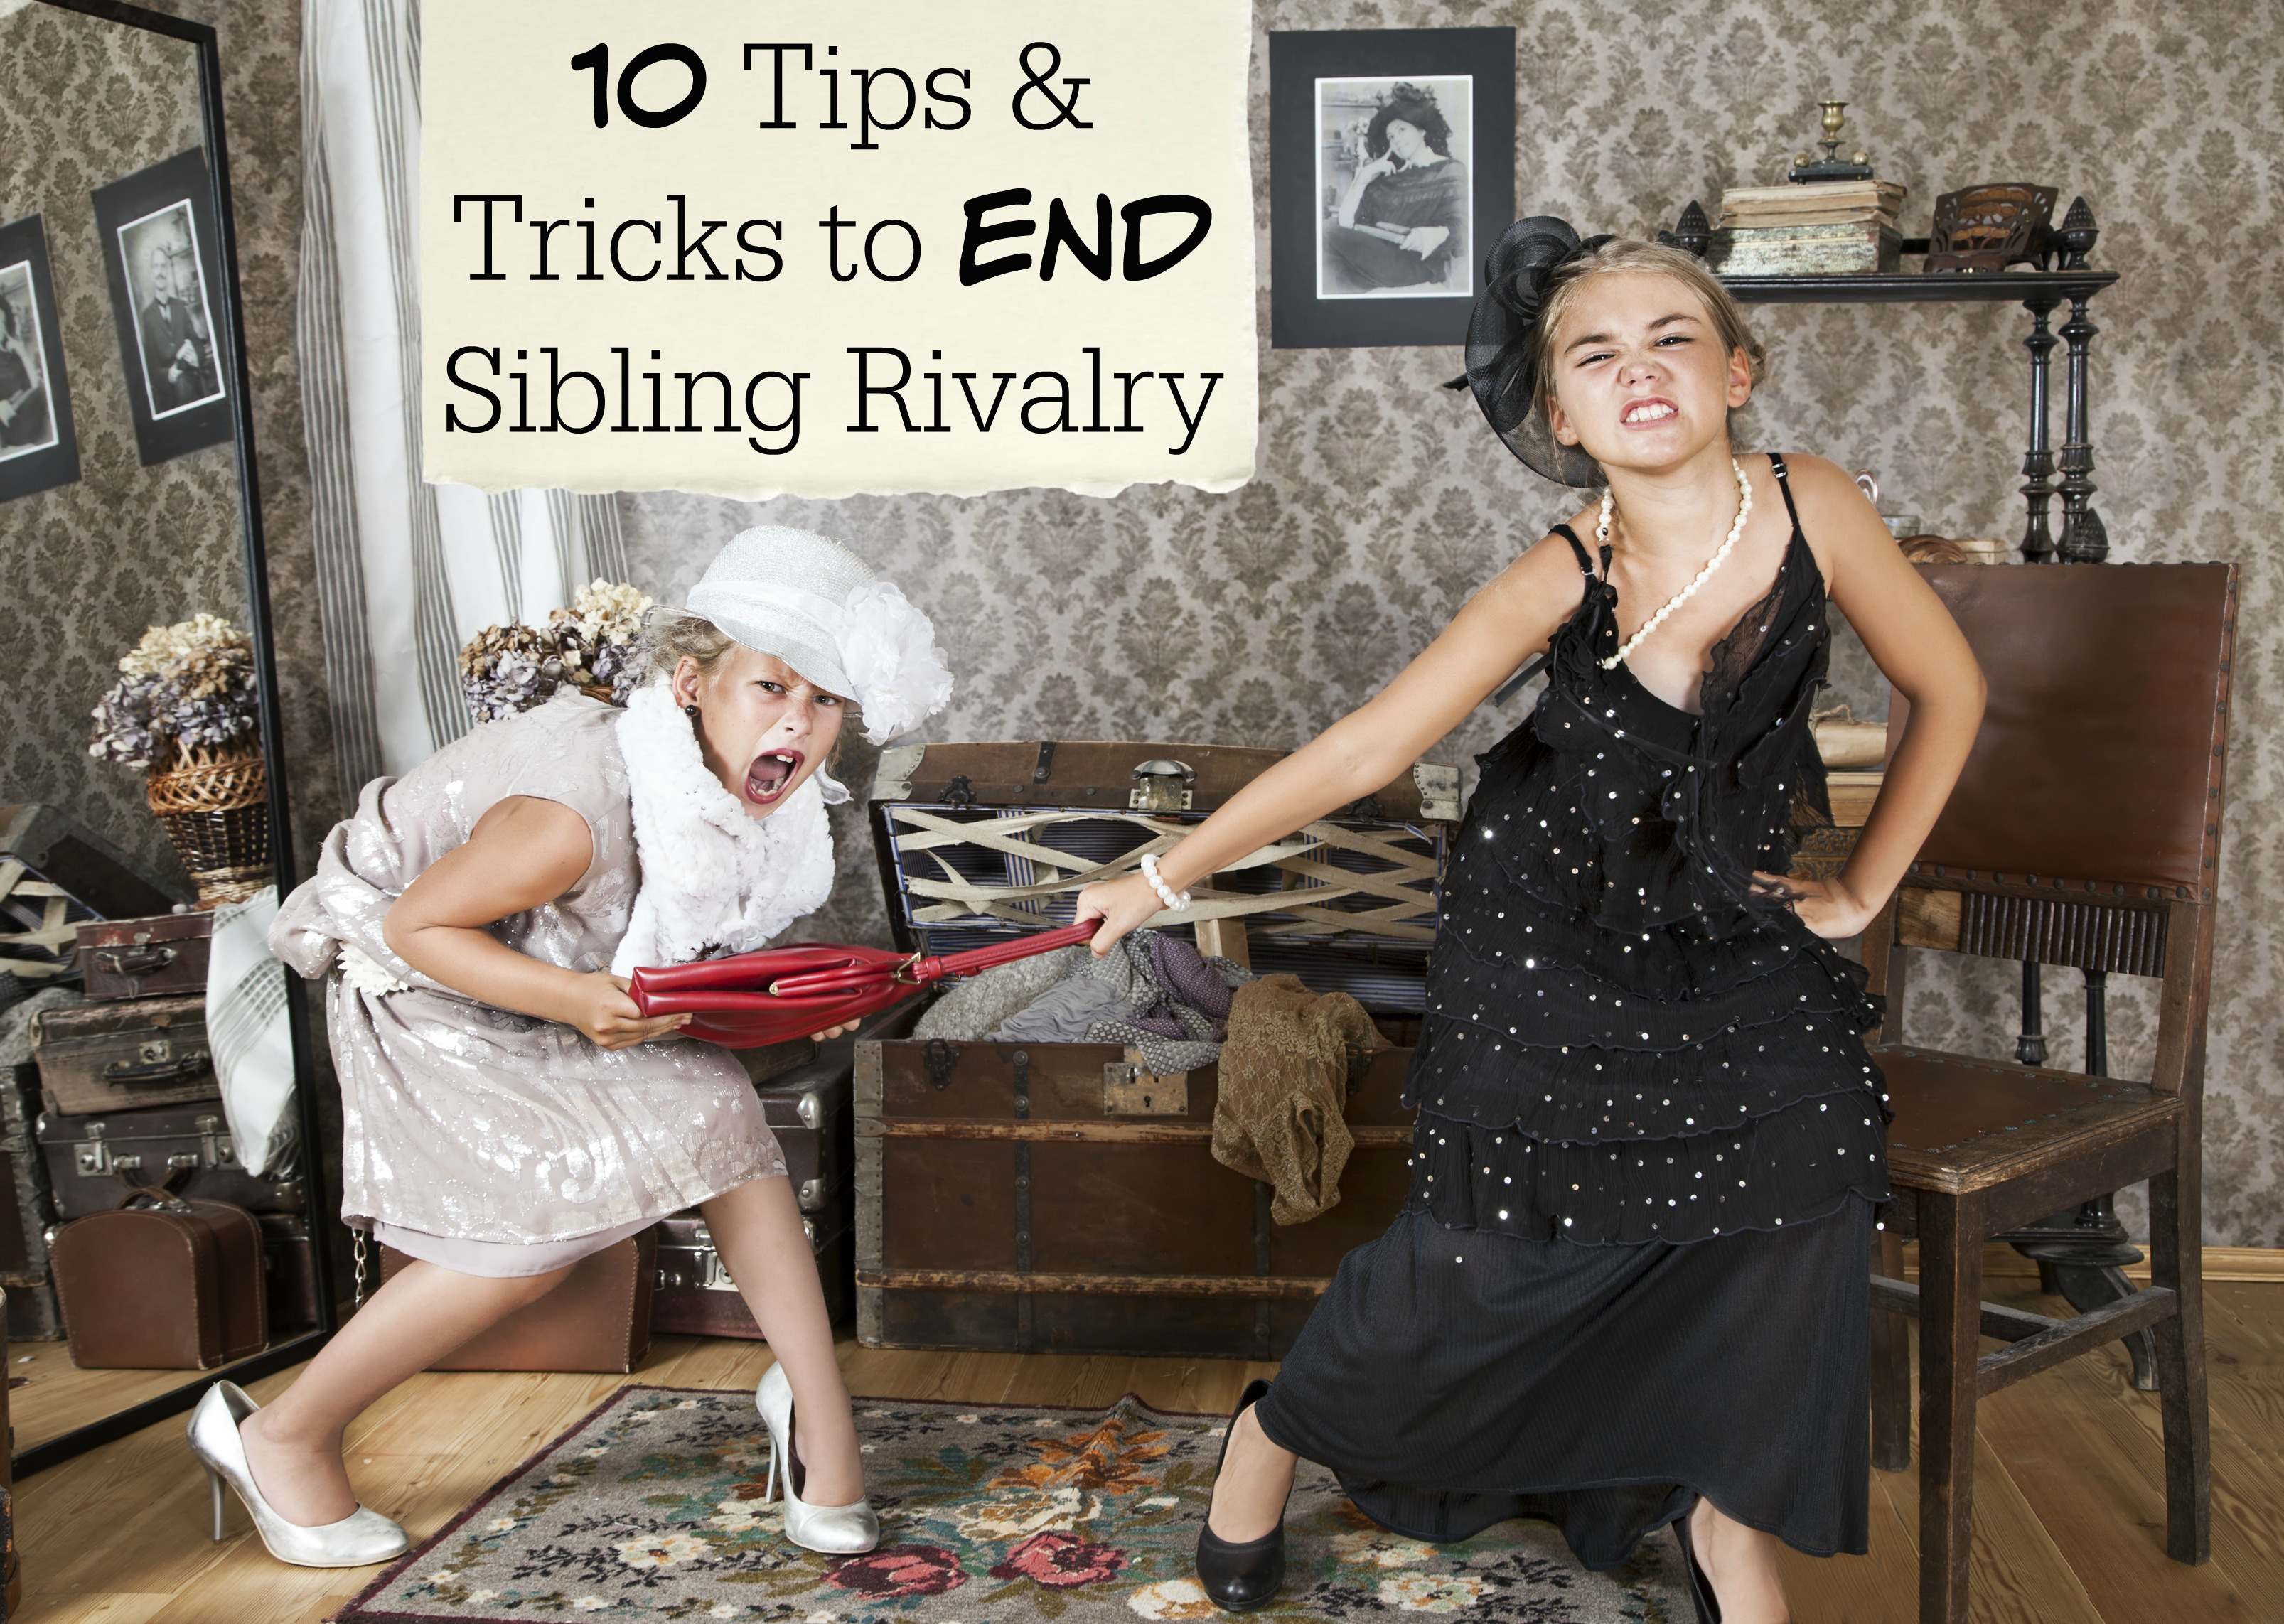 10 Tips and Tricks to END Sibling Rivalry - simplytodaylife.com